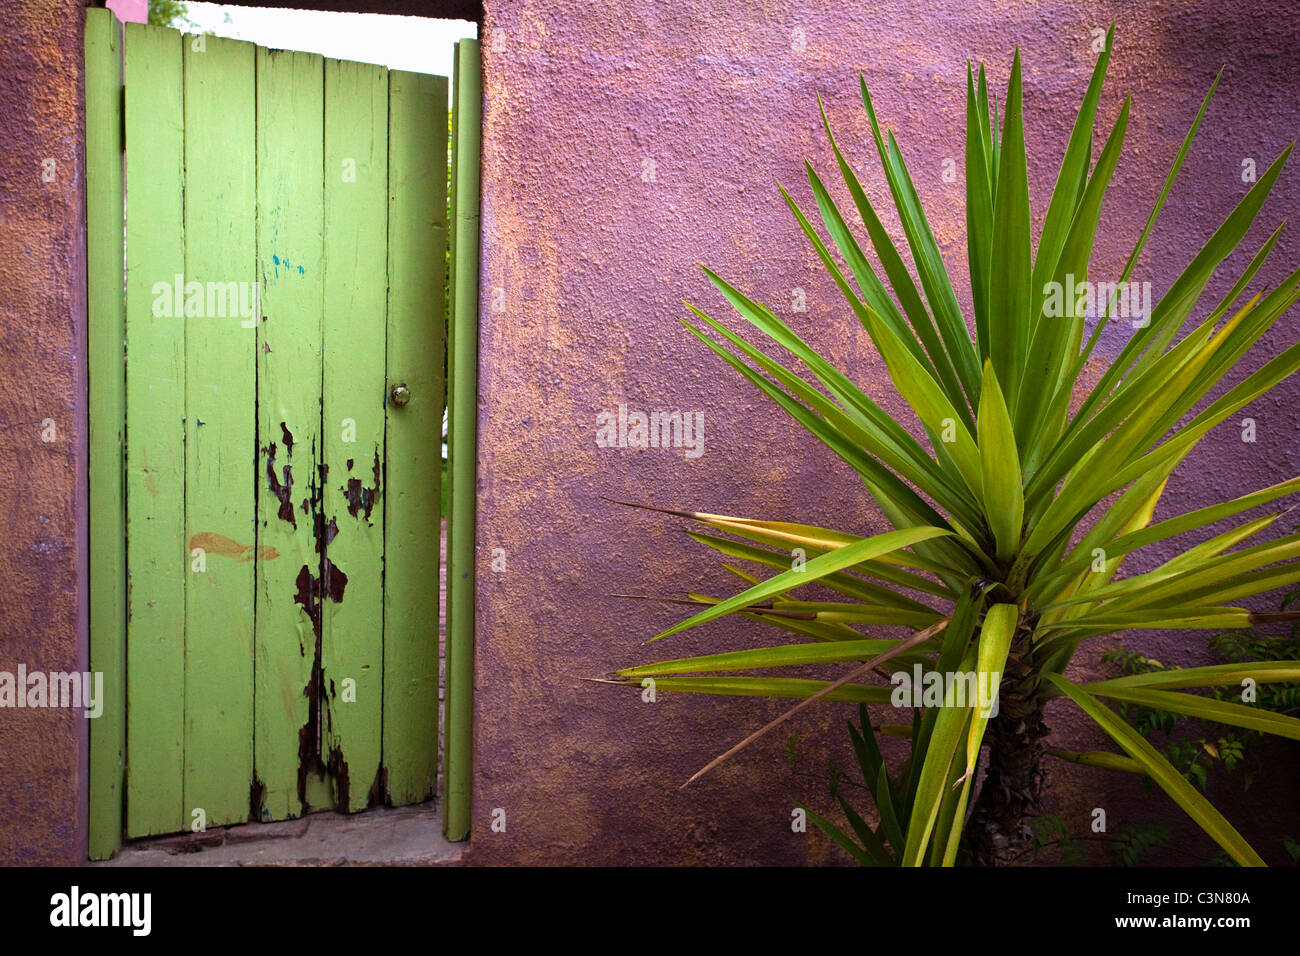 South Africa, Western Cape, Barrydale, garden door. - Stock Image